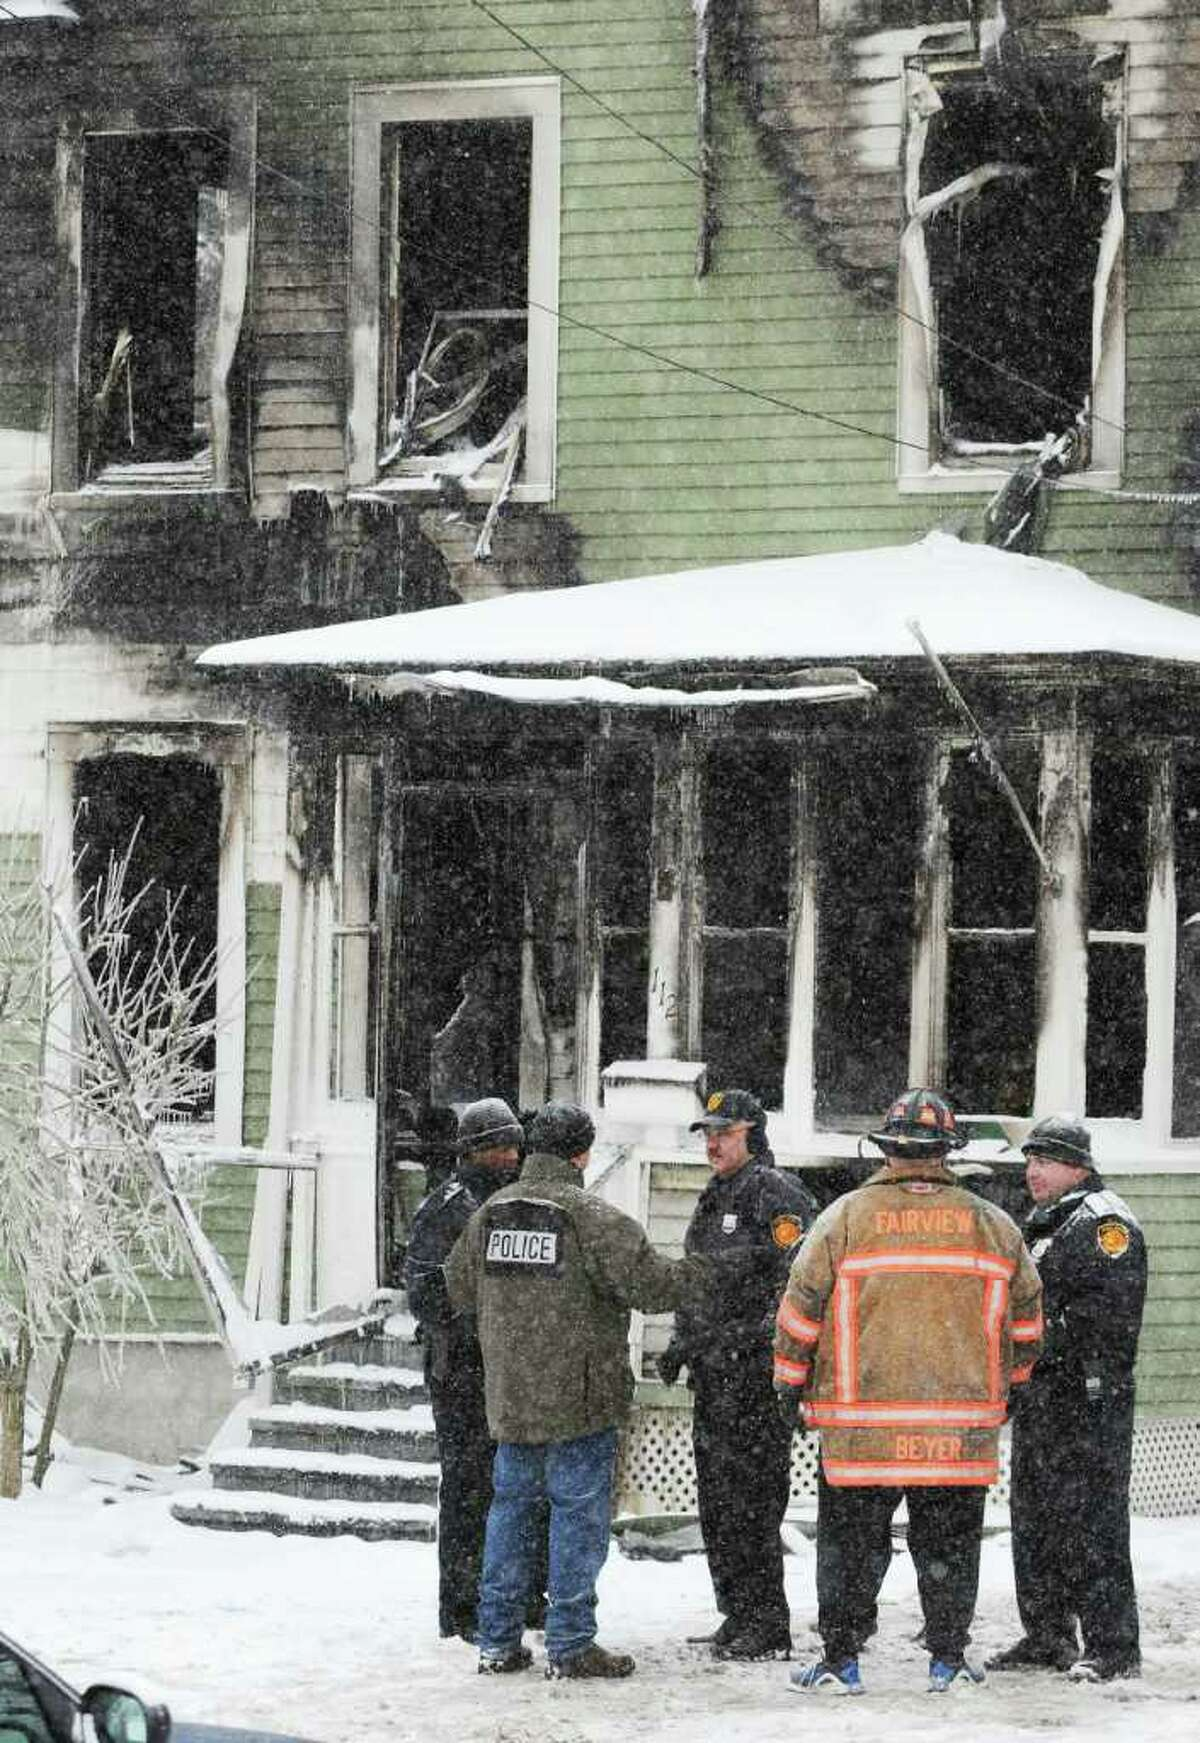 Town of Poughkeepsie and the Fairview Fire Department with other authorities at 112 Fairview Ave. in the Town of Poughkeepsie on Saturday, Jan. 21, 2012. A fire destroyed the building. (AP Photo/Poughkeepsie Journal, Darryl Bautista)